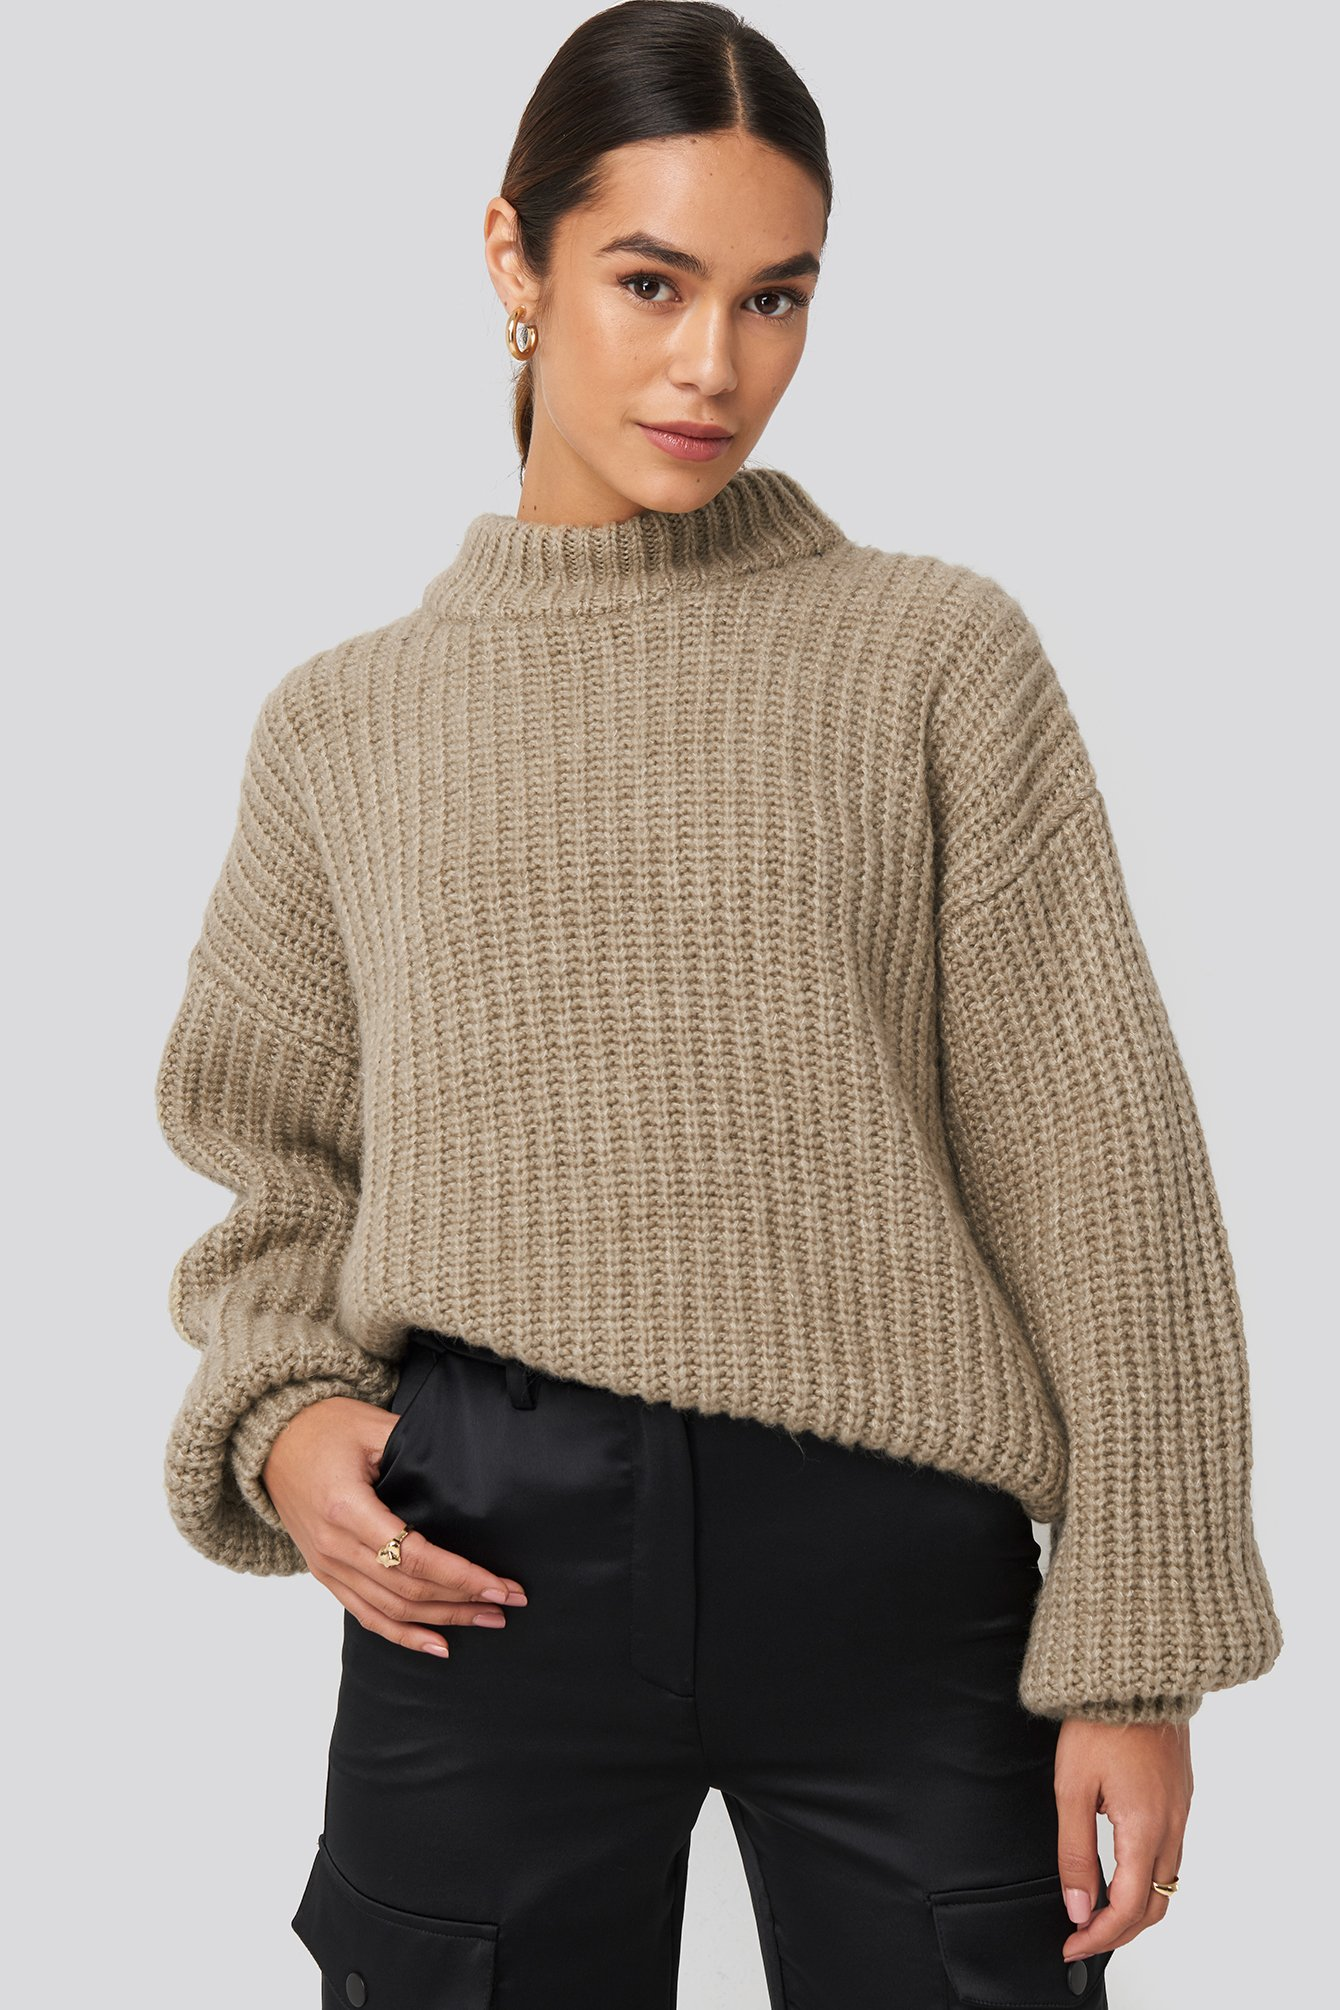 Queen Of Jetlags X Na-kd Round Neck Knitted Sweater - Beige